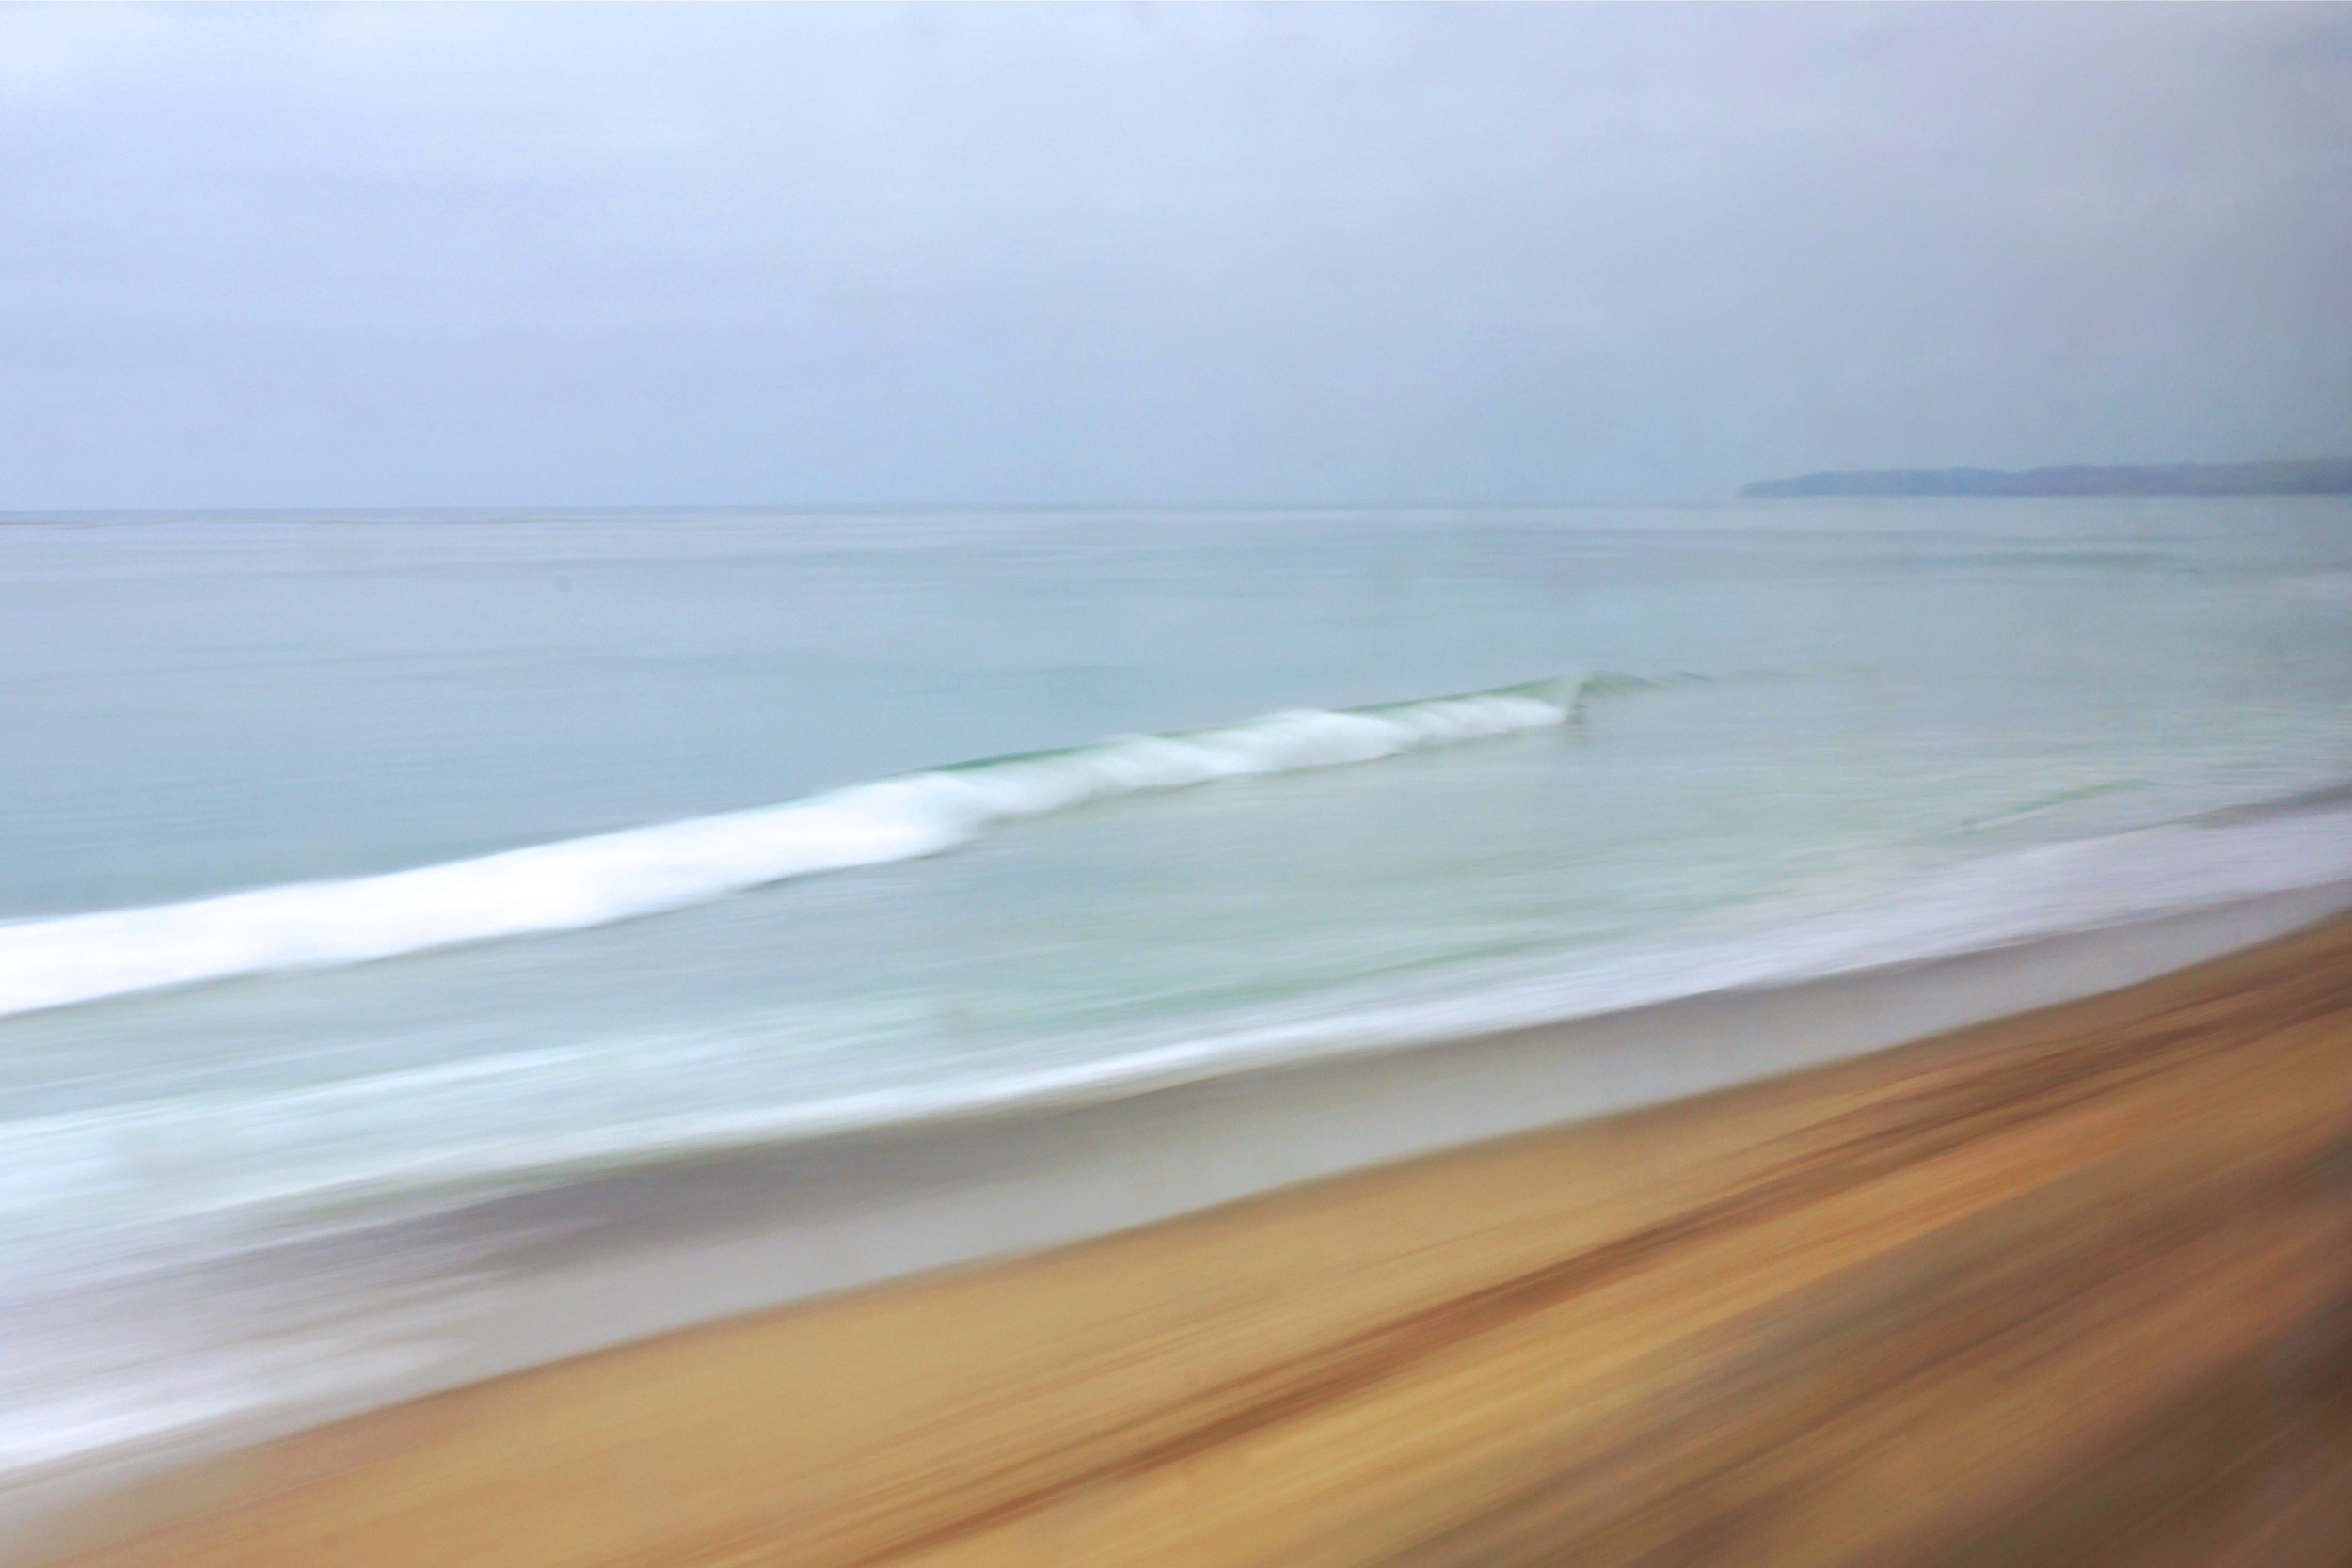 mph  Taken through Surfliner's polarized window ©2014 Nicole Boramanand. All rights reserved.